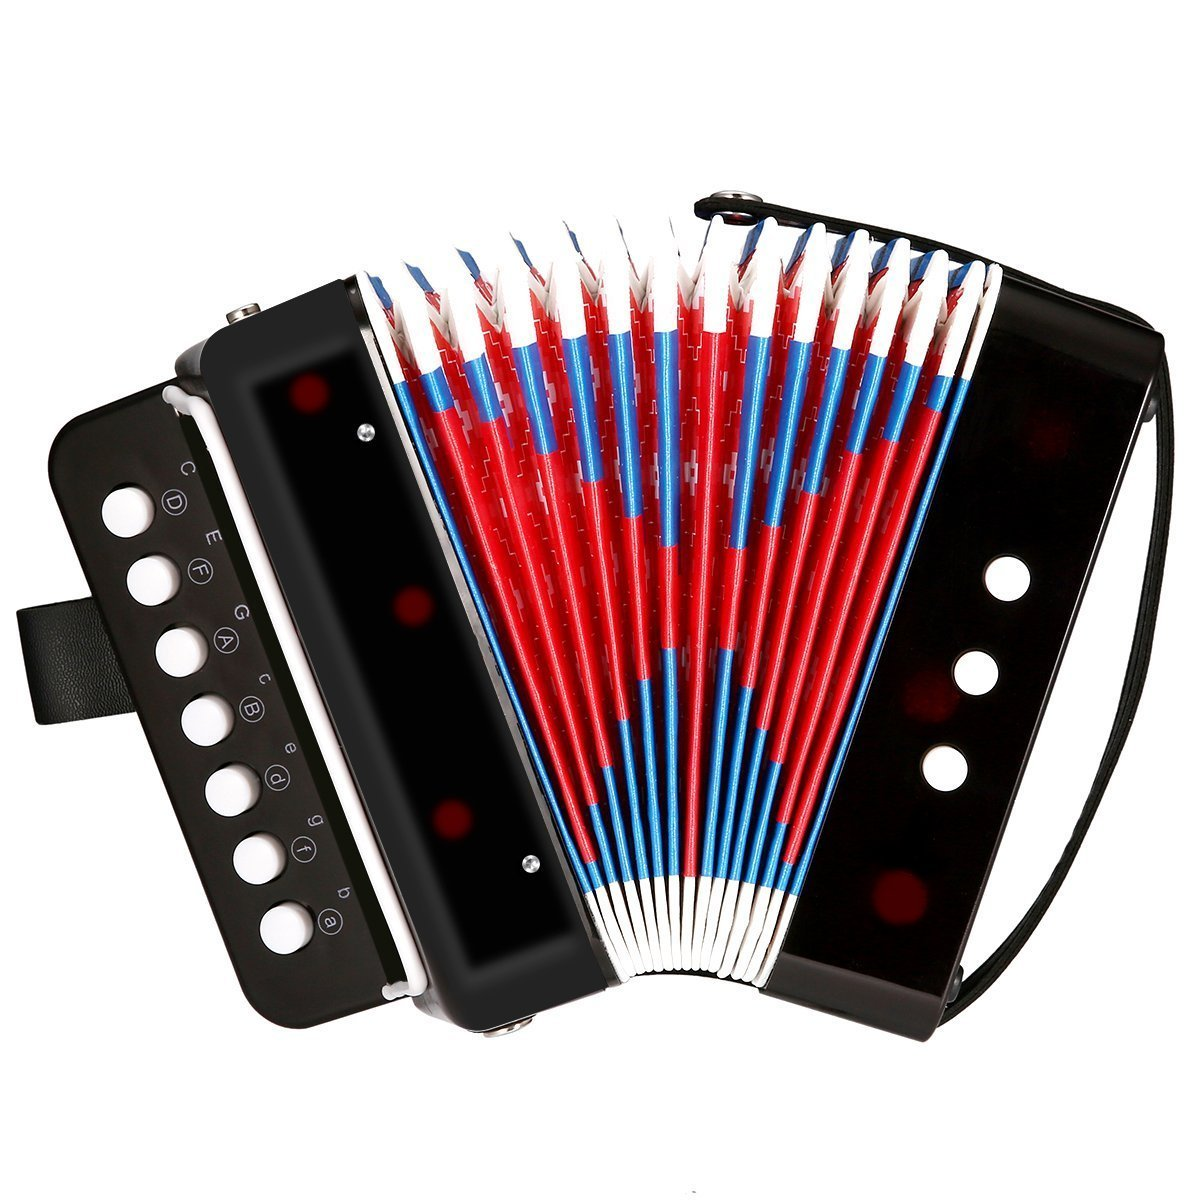 Children's Musical Instrument Balc Toy Accordion, Solo and Ensemble Instrument, Musical instrument for Early Childhood Teaching, Ten Keys, Great for Music Education